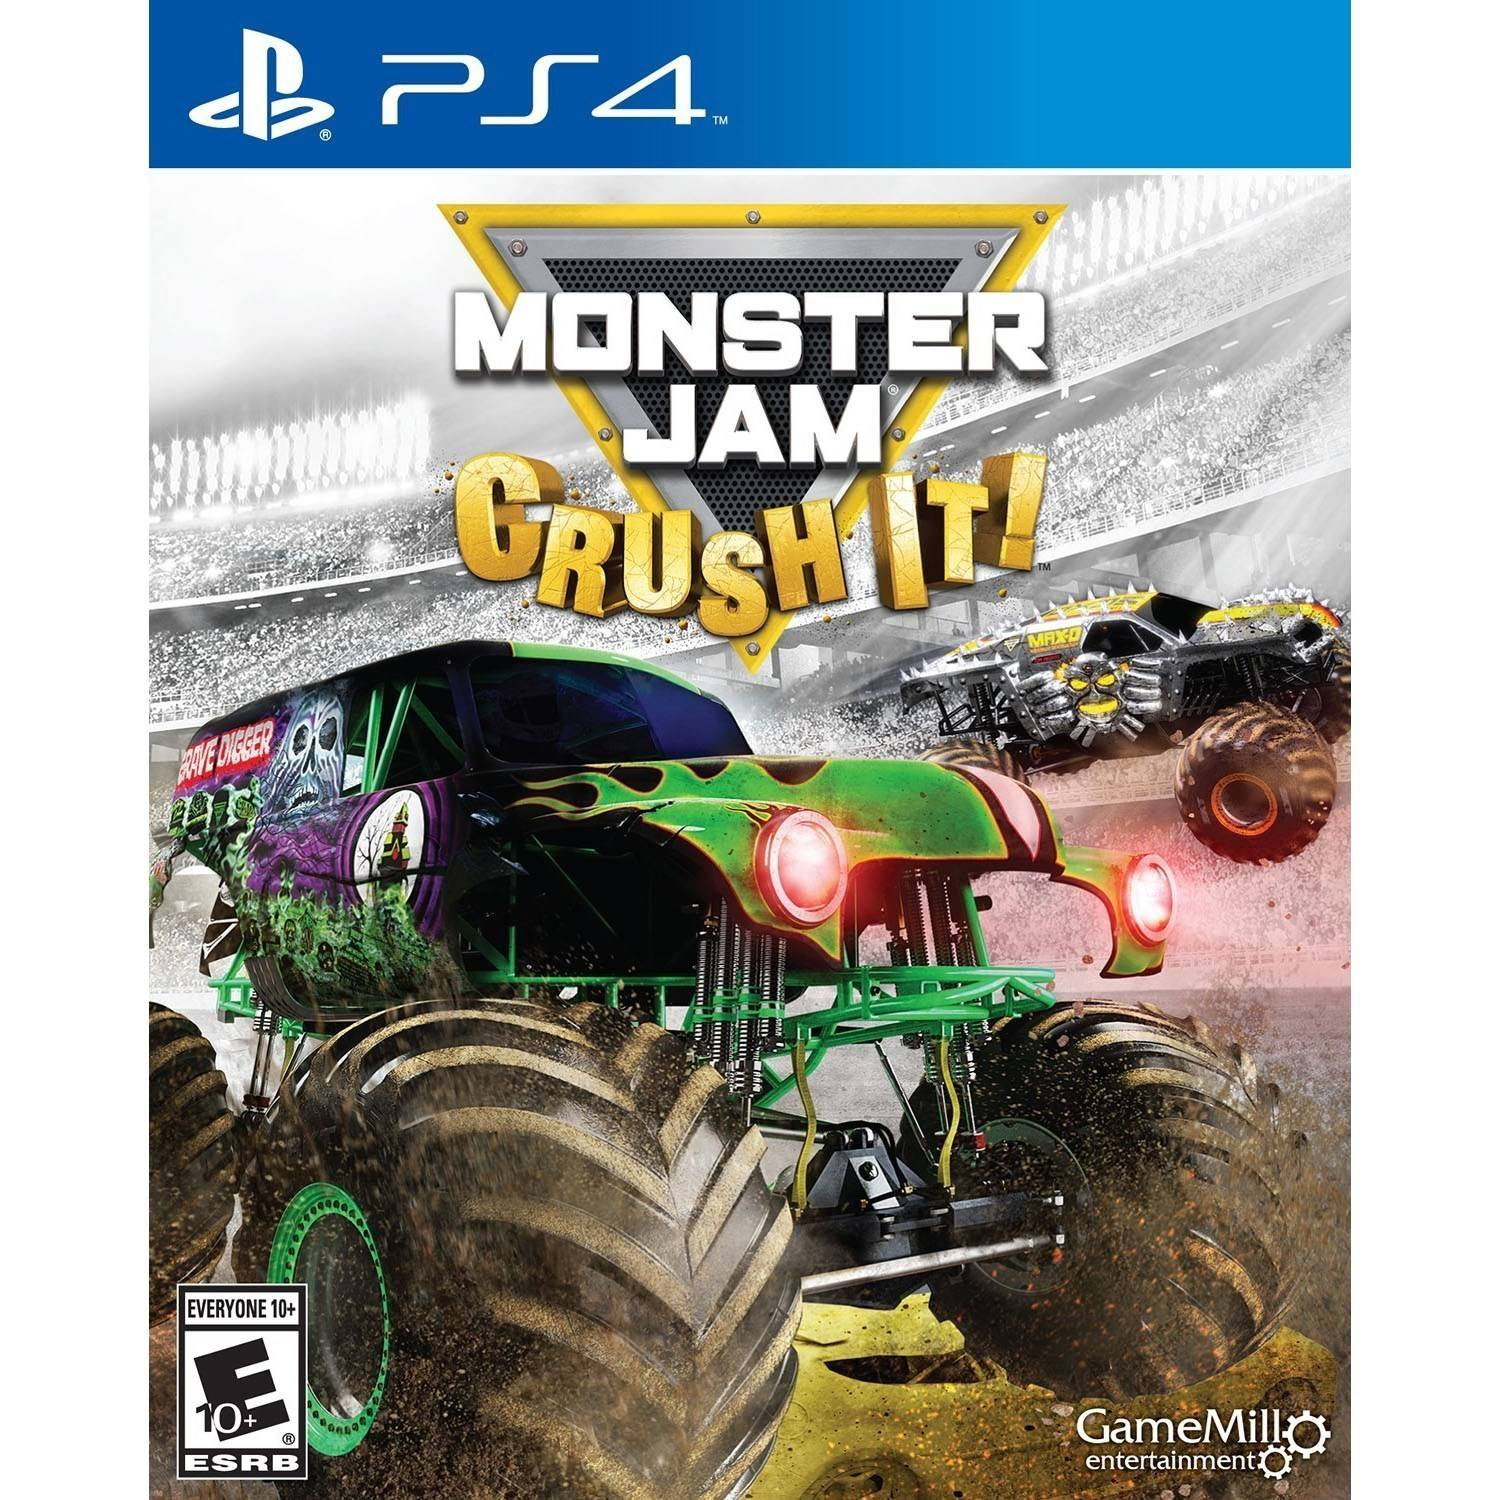 Monster Jam (Playstation 4) by MADCOW